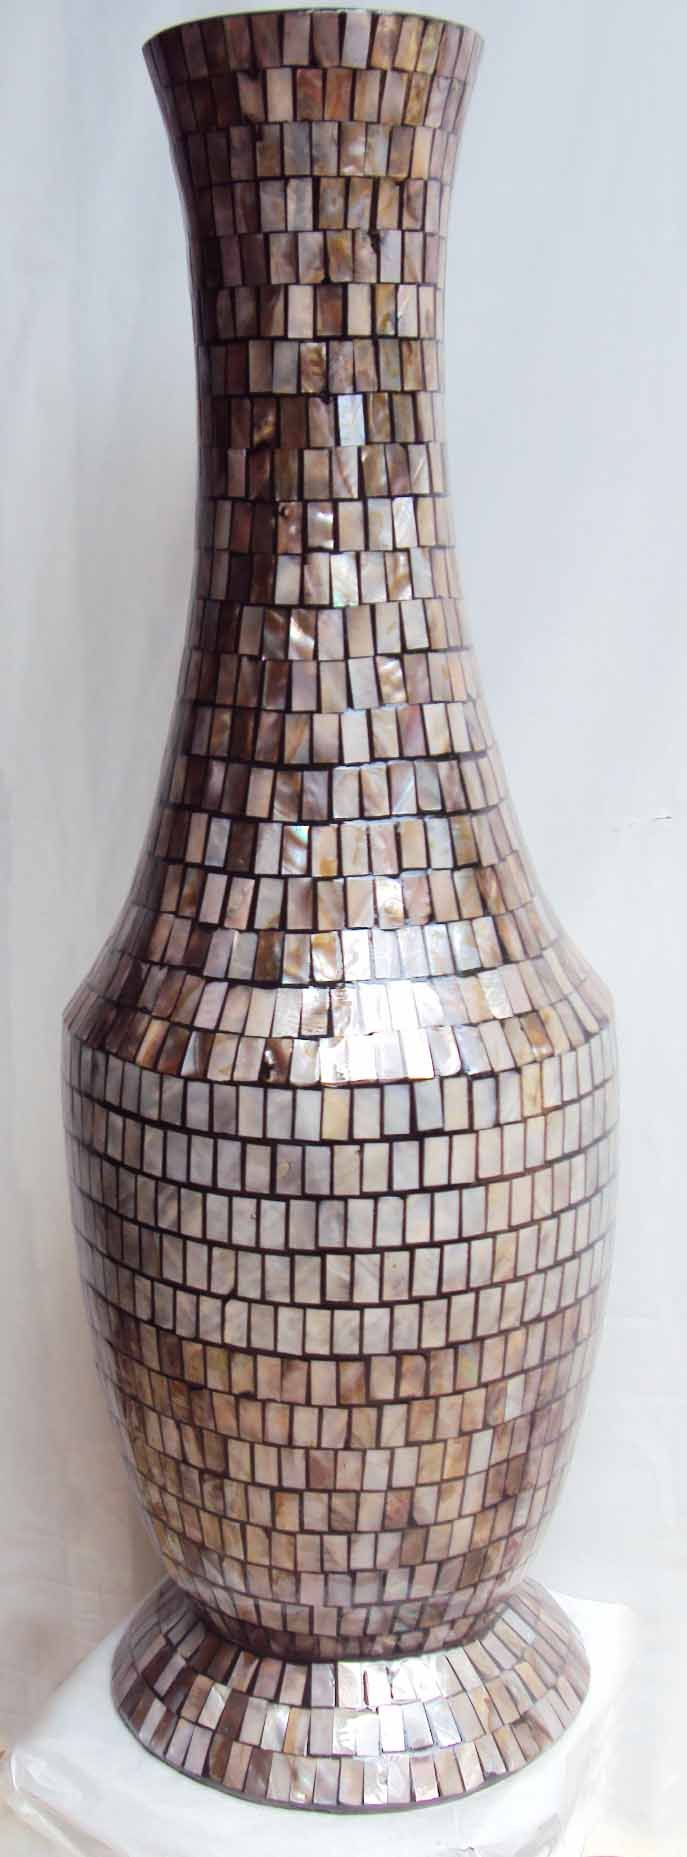 7 best mother of pearl vase images on pinterest flower vases bamboo vase with mother of pearl shell mosaiced and lacquer painting coated reviewsmspy